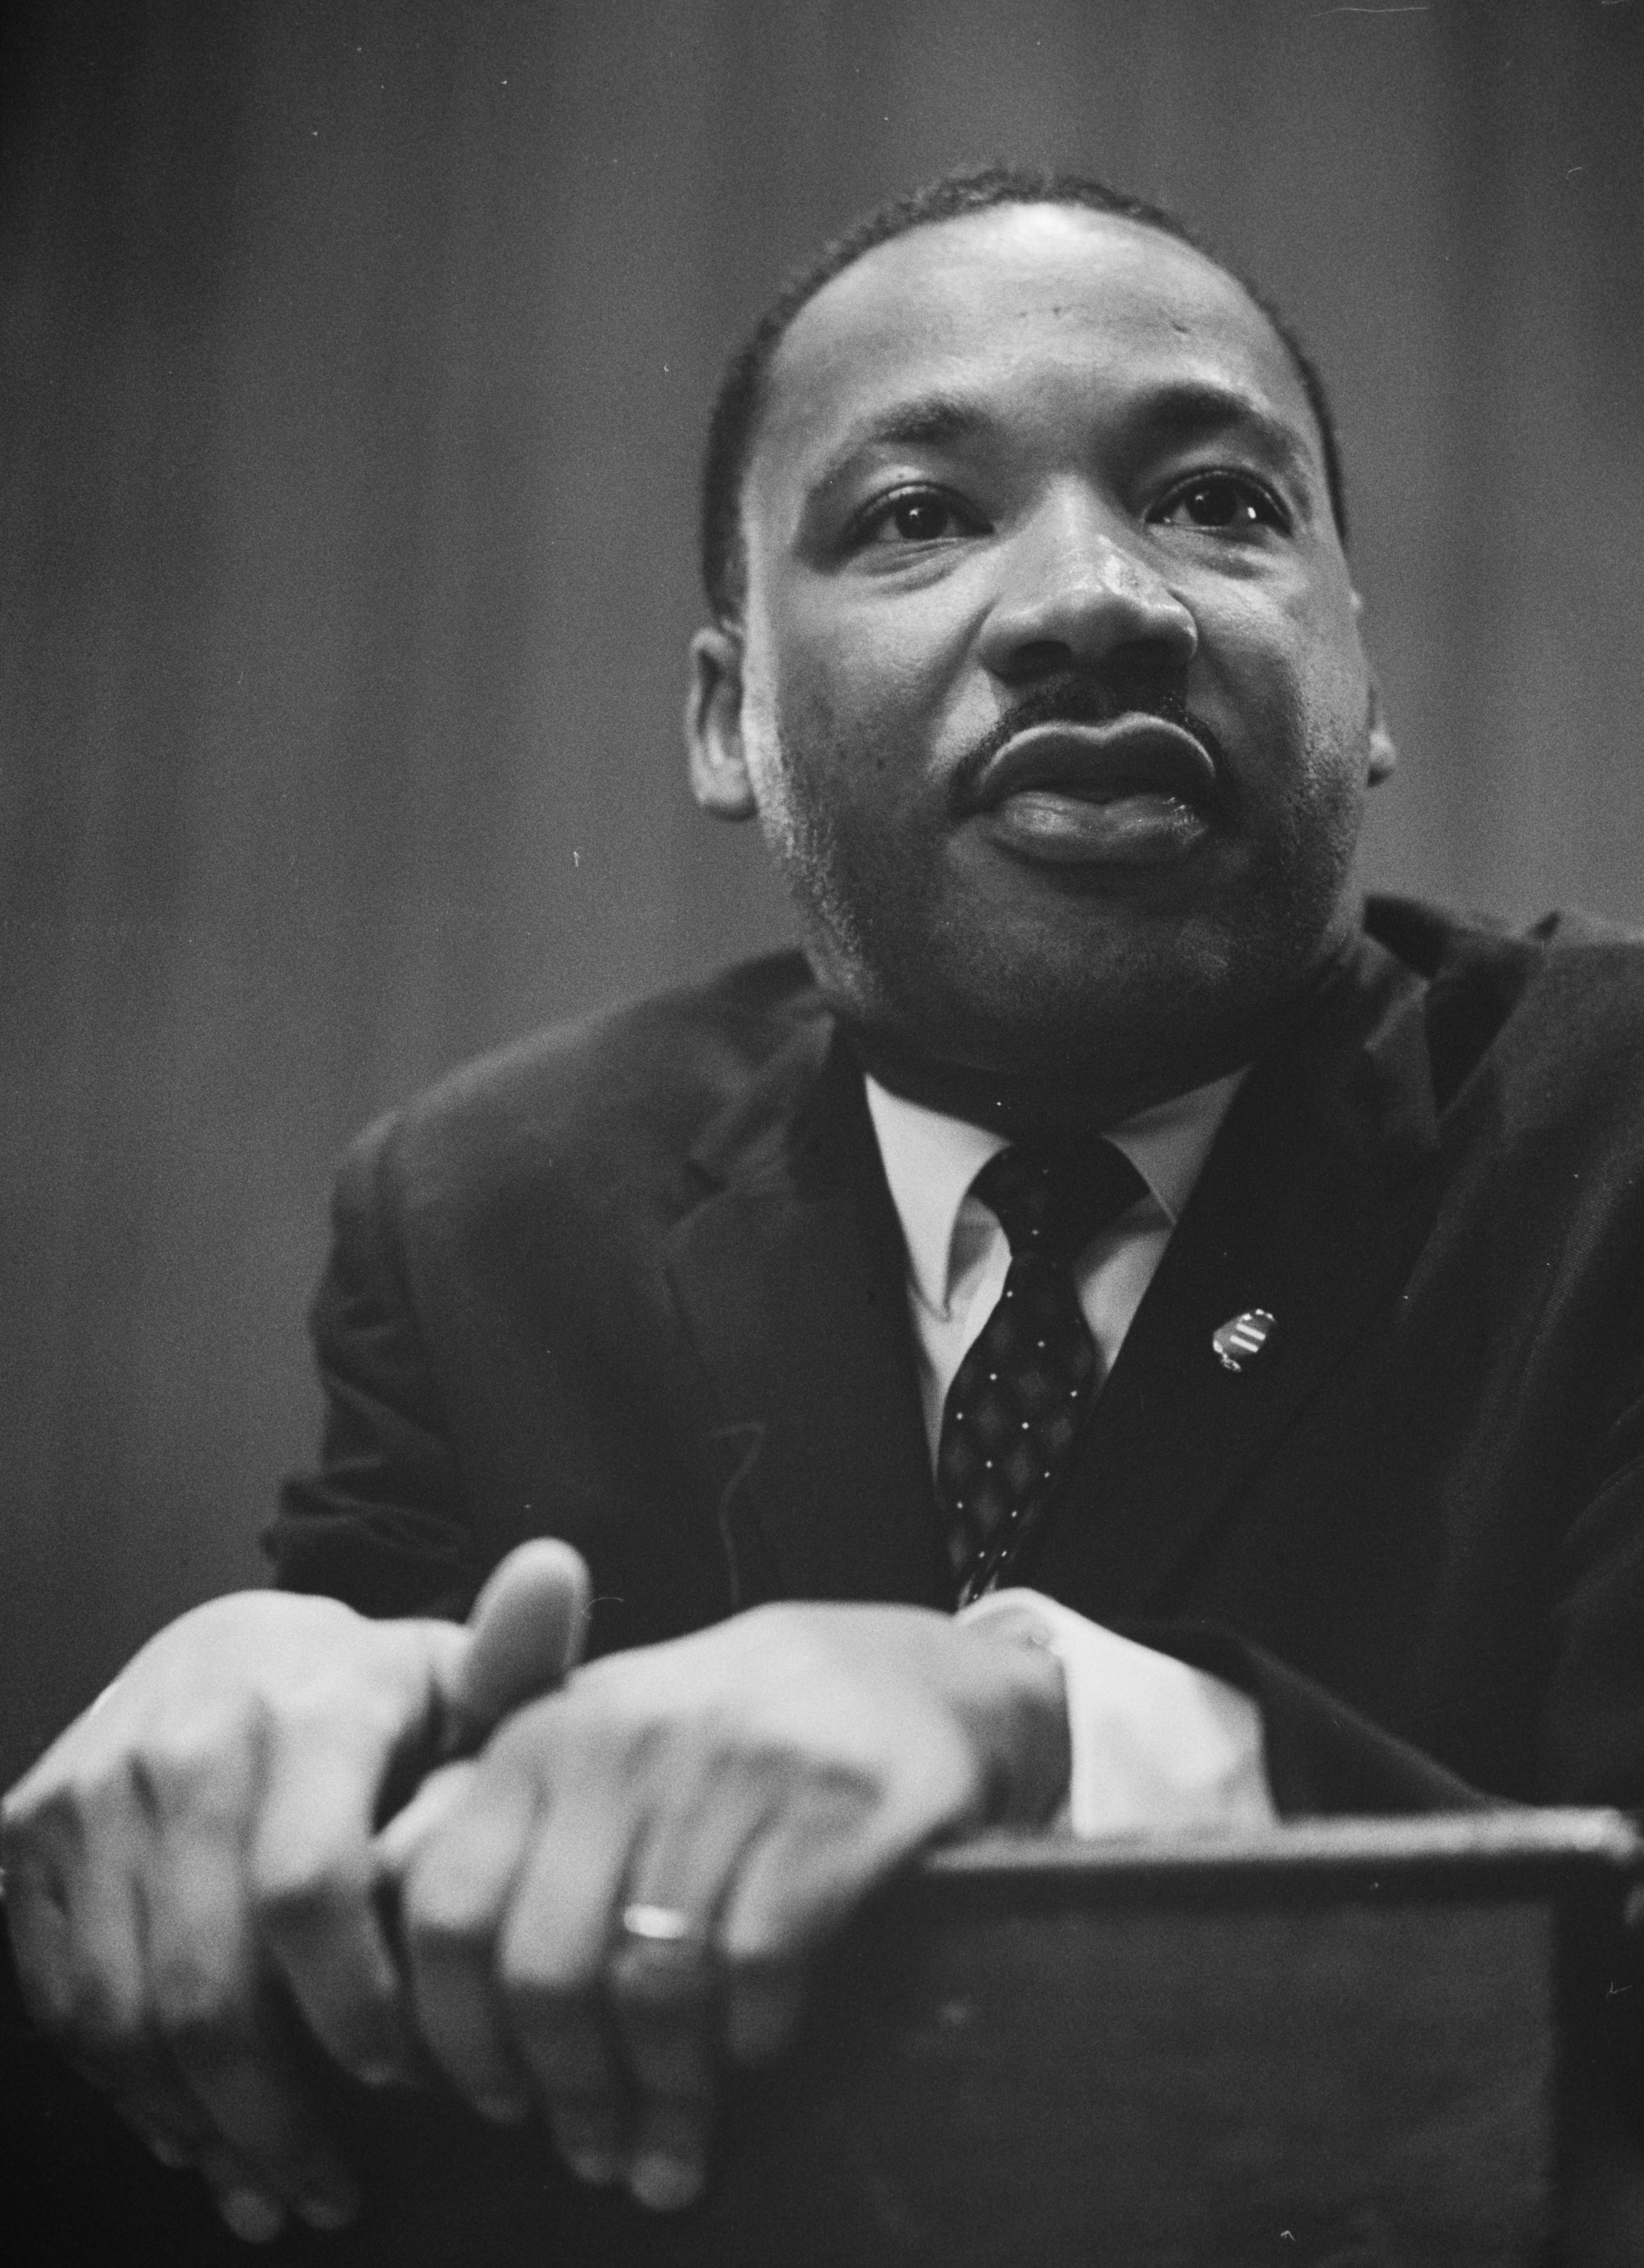 Martin Luther King Jr, leaning on a podium